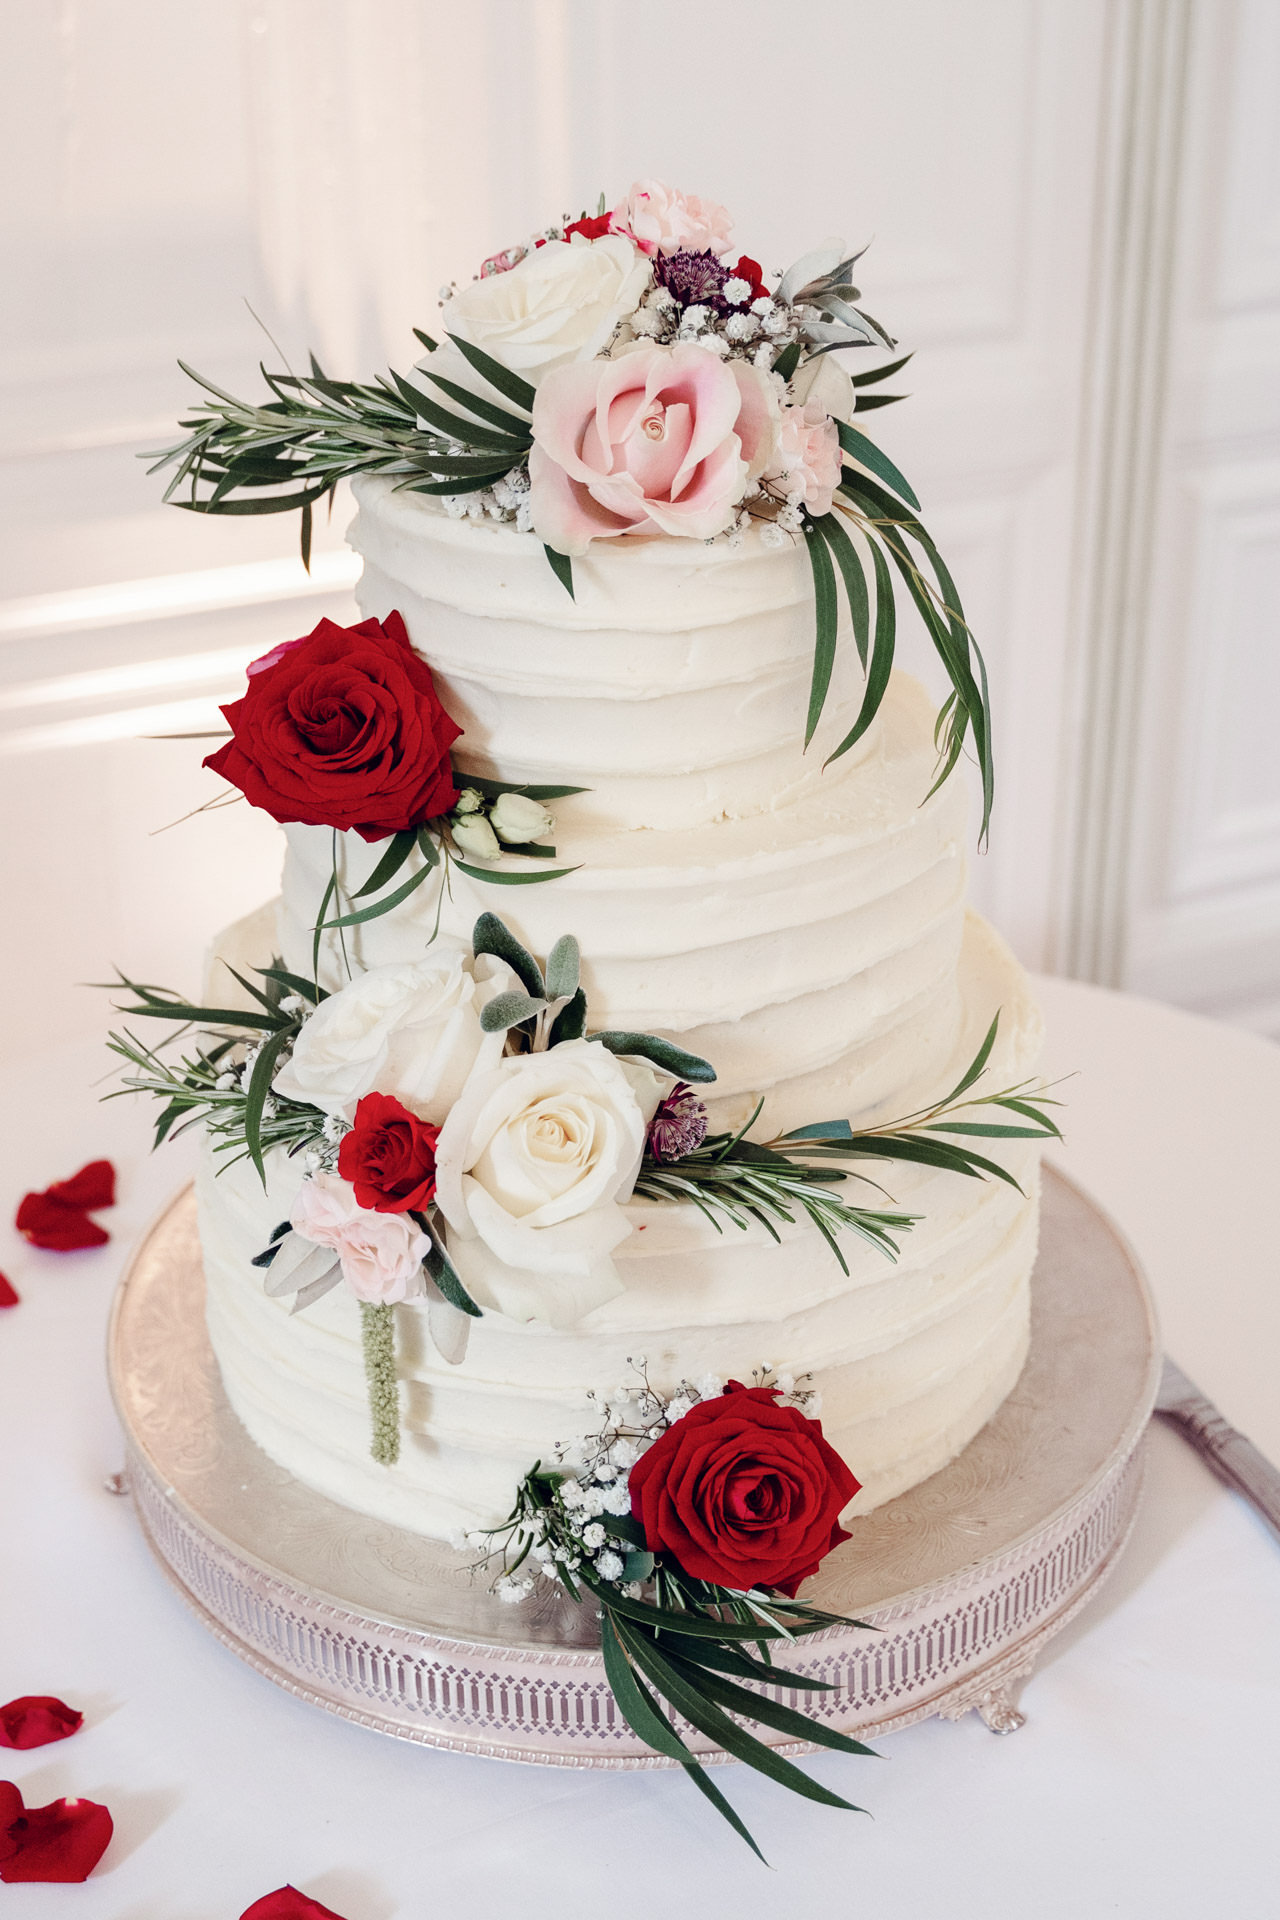 Simple but effective flowers and foliage can add opulence to a plainer wedding cake.